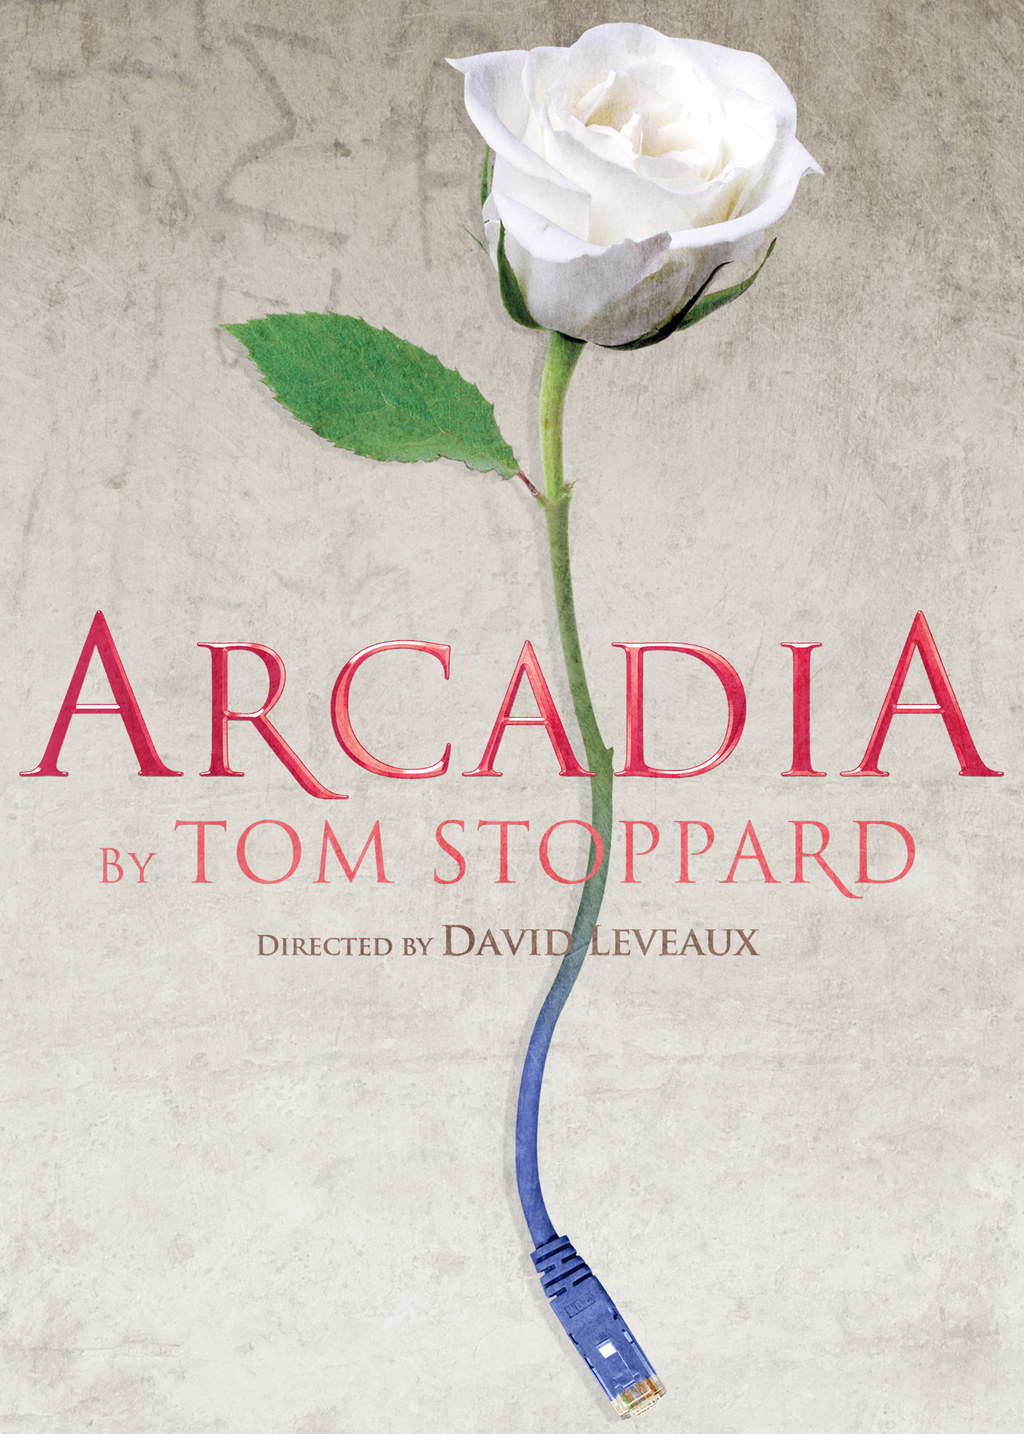 an essay on tom stoppards postmodern play of arcadia Postmodern theme in tom stoppard's arcadia - arcadia by tom stoppard is written as a typically postmodern play, it explores this movement throughout the play with the use of features of postmodernism, and by its open ended ending.